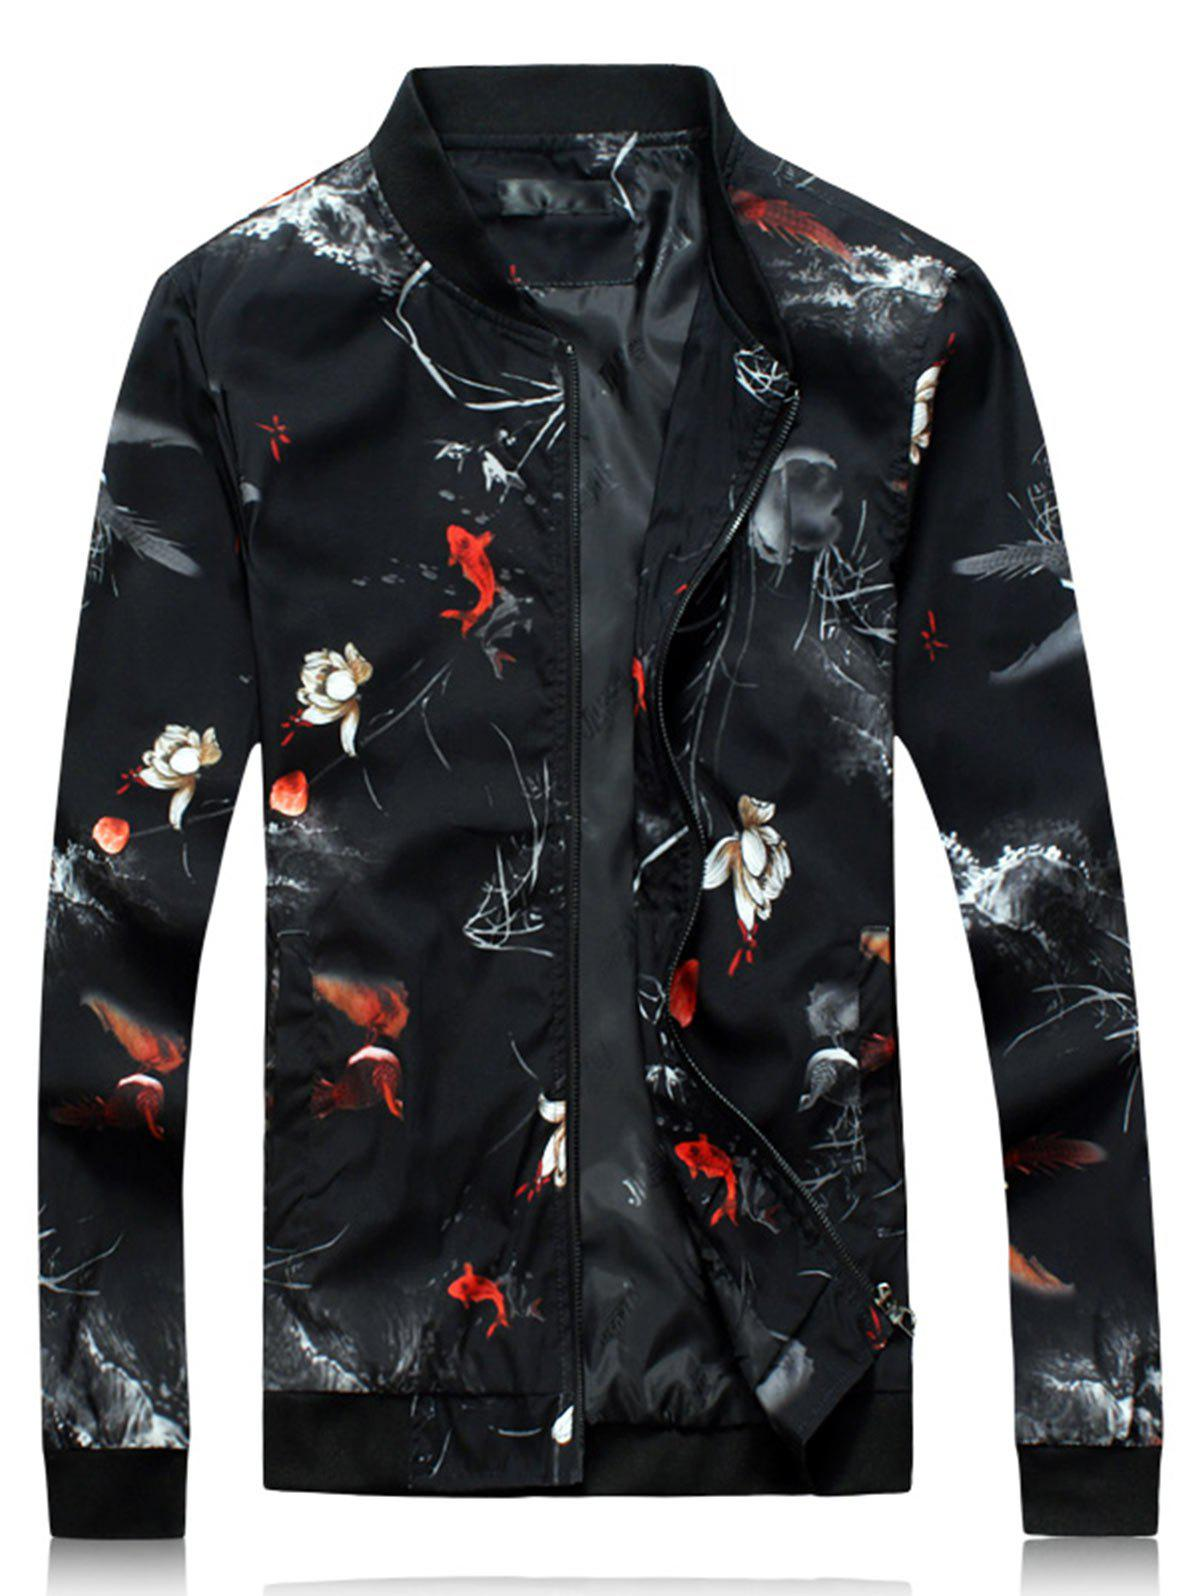 Zip Up 3D Floral Print Jacket leopard floral print zip up jacket